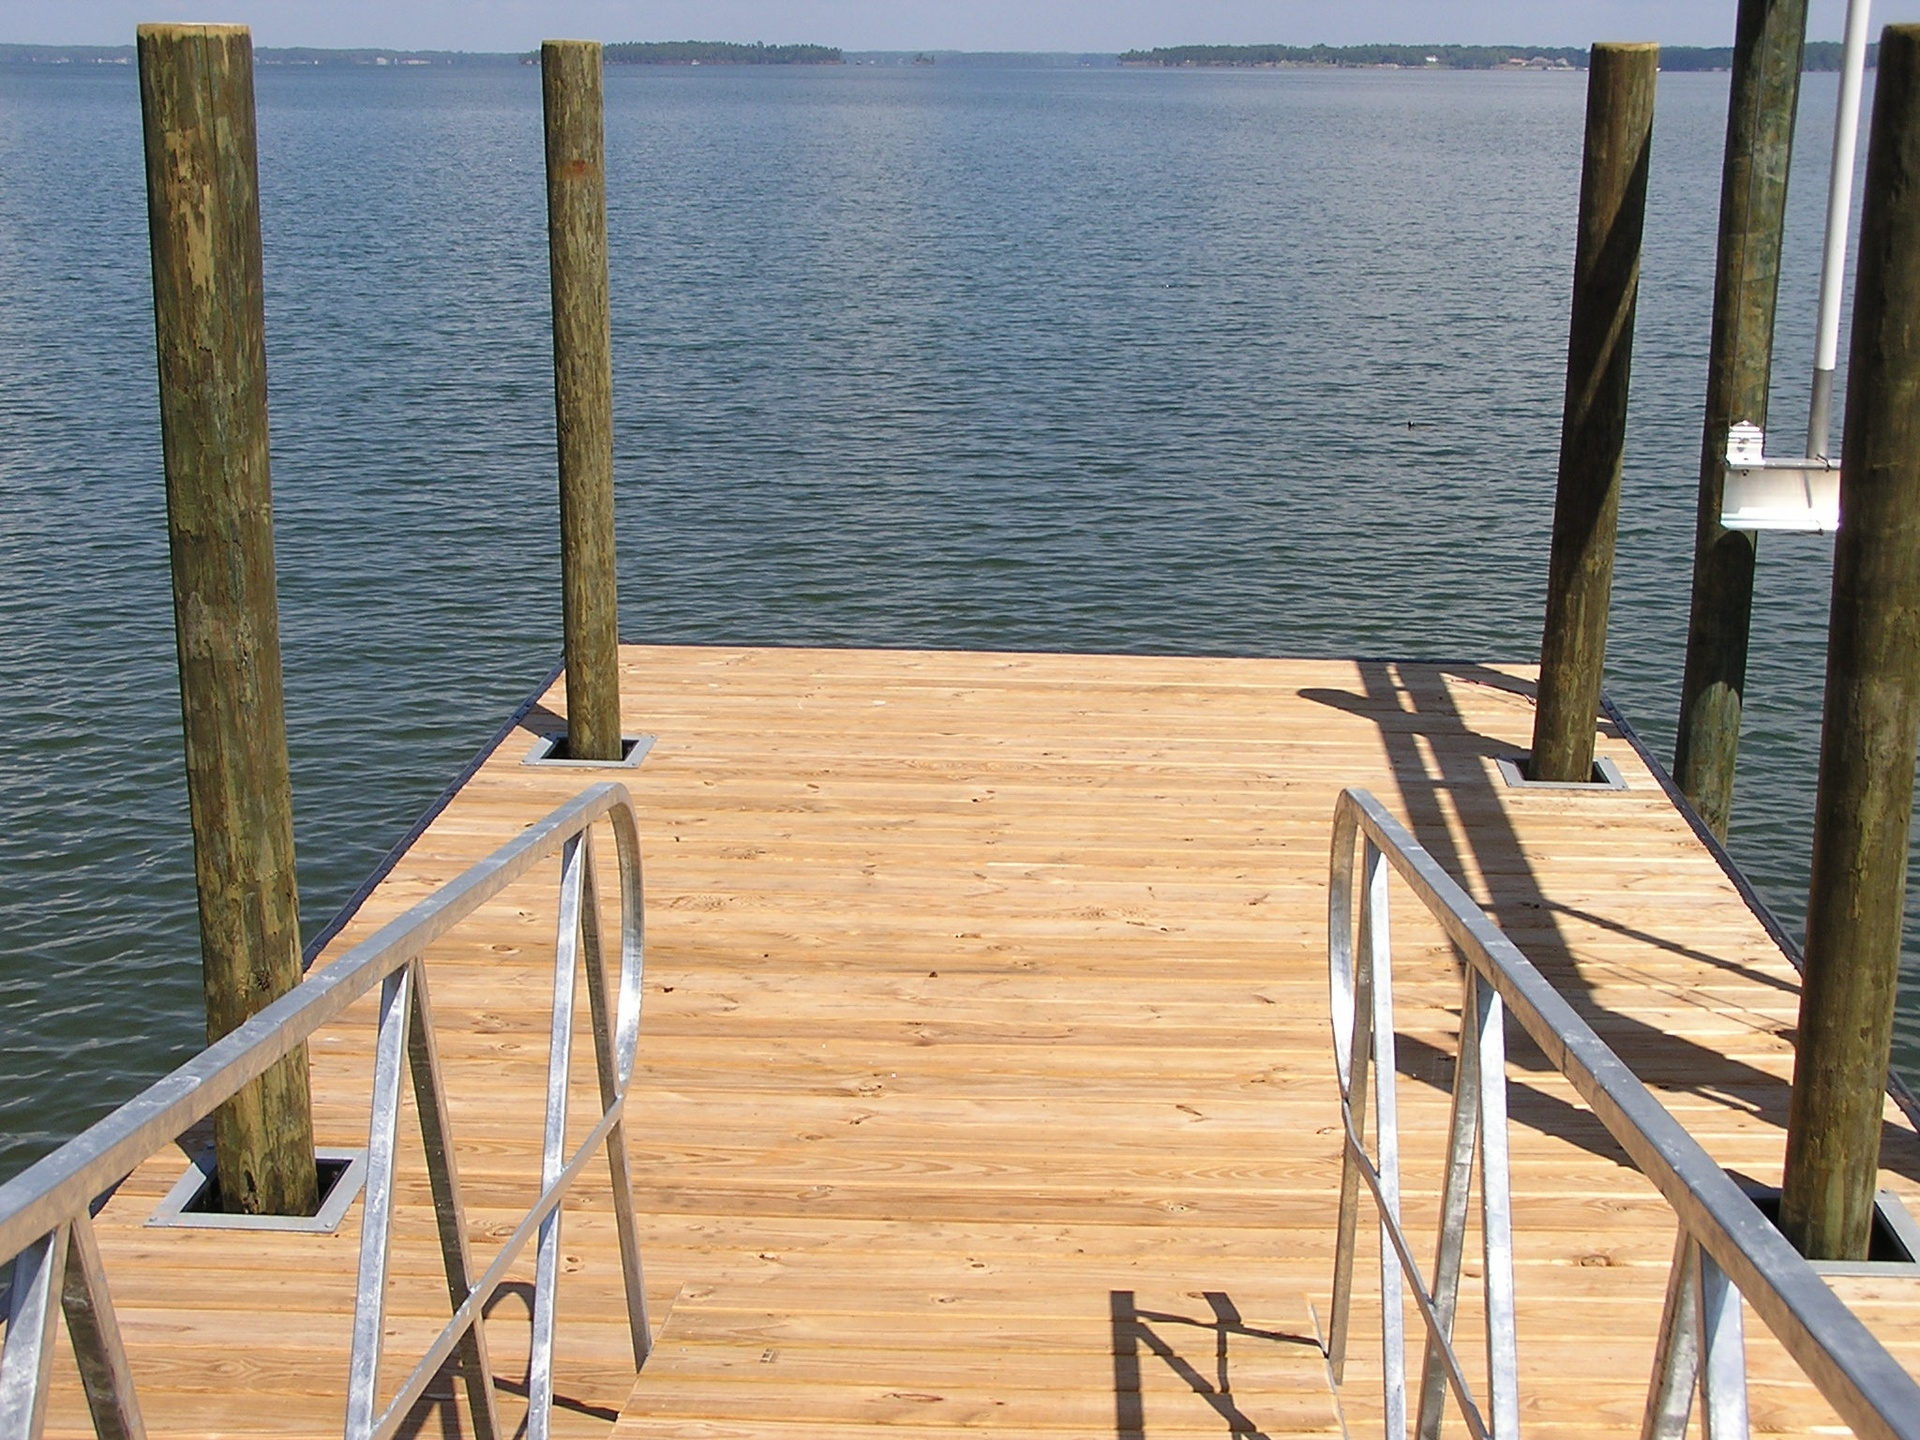 Big Water Floating Dock with 4 Pilings